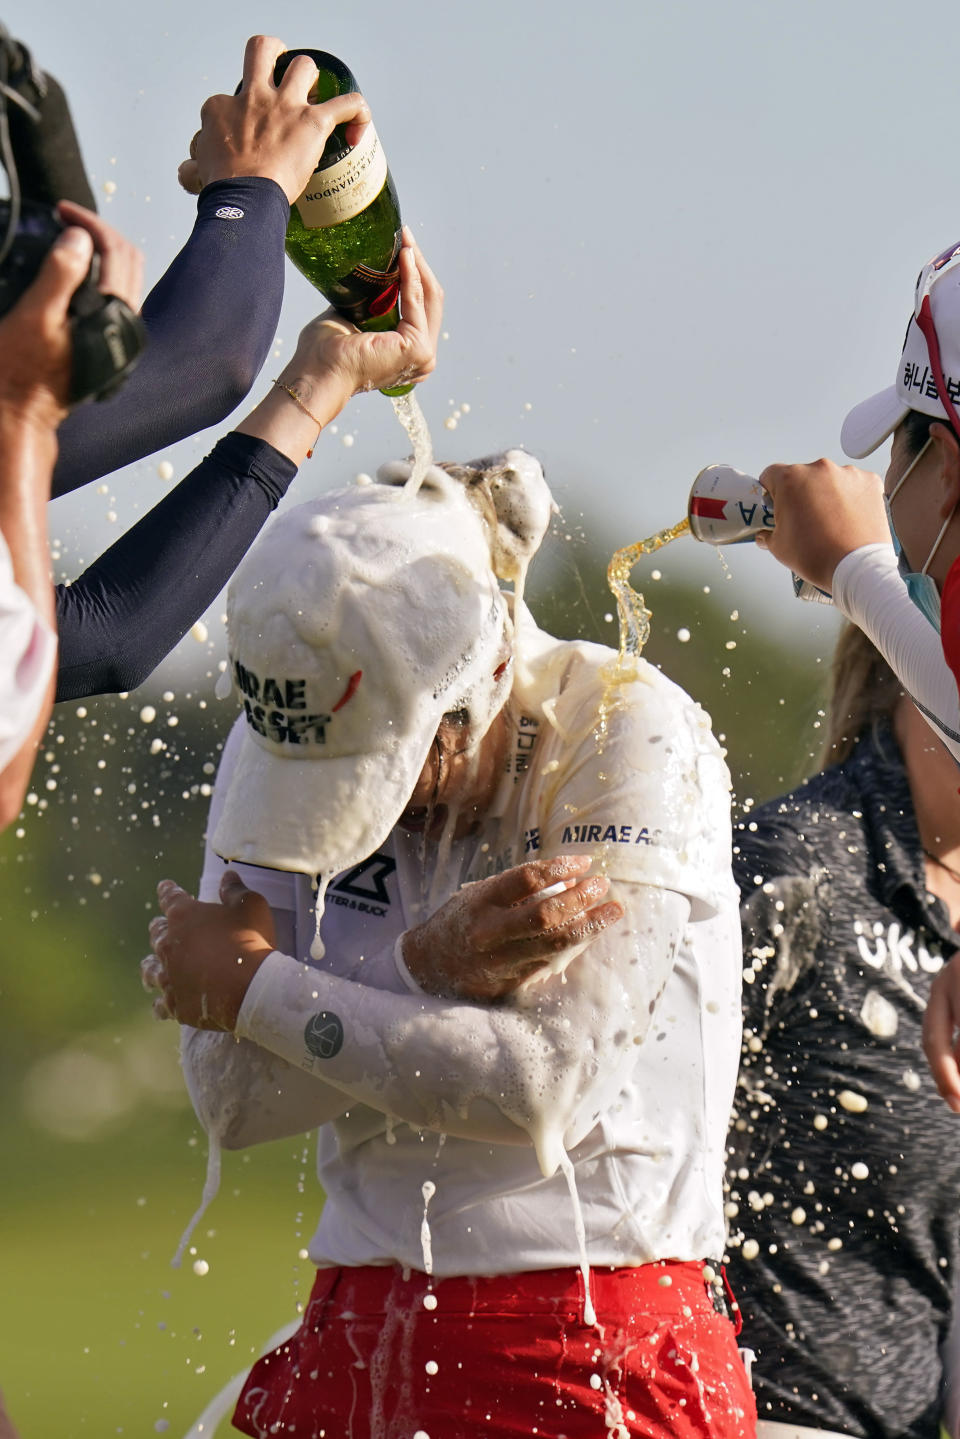 Sei Young Kim, of South Korea, gets doused with champagne after winning the LPGA Pelican Women's Championship golf tournament Sunday, Nov. 22, 2020, in Belleair, Fla. (AP Photo/Chris O'Meara)